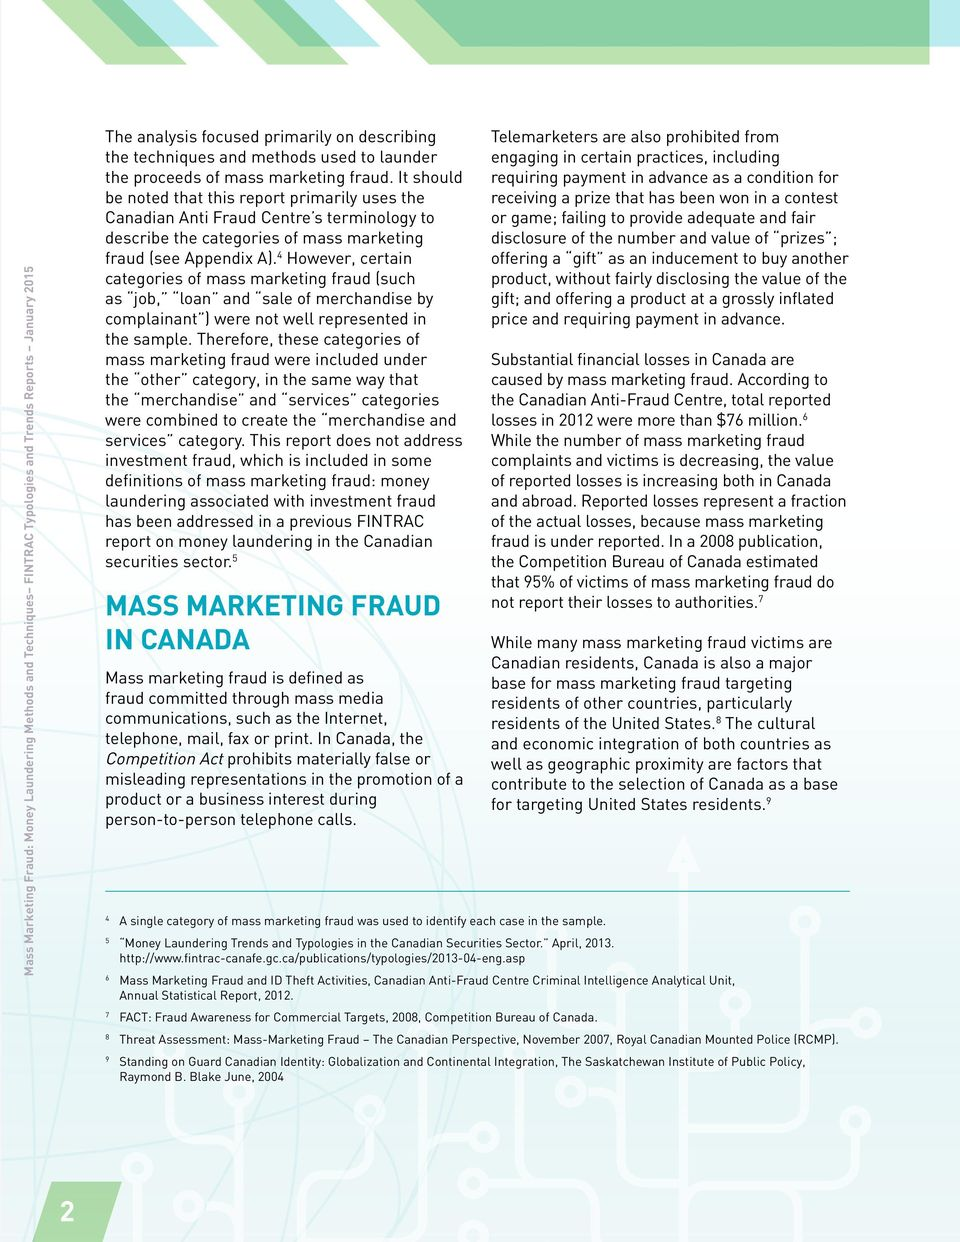 4 However, certain categories of mass marketing fraud (such as job, loan and sale of merchandise by complainant ) were not well represented in the sample.